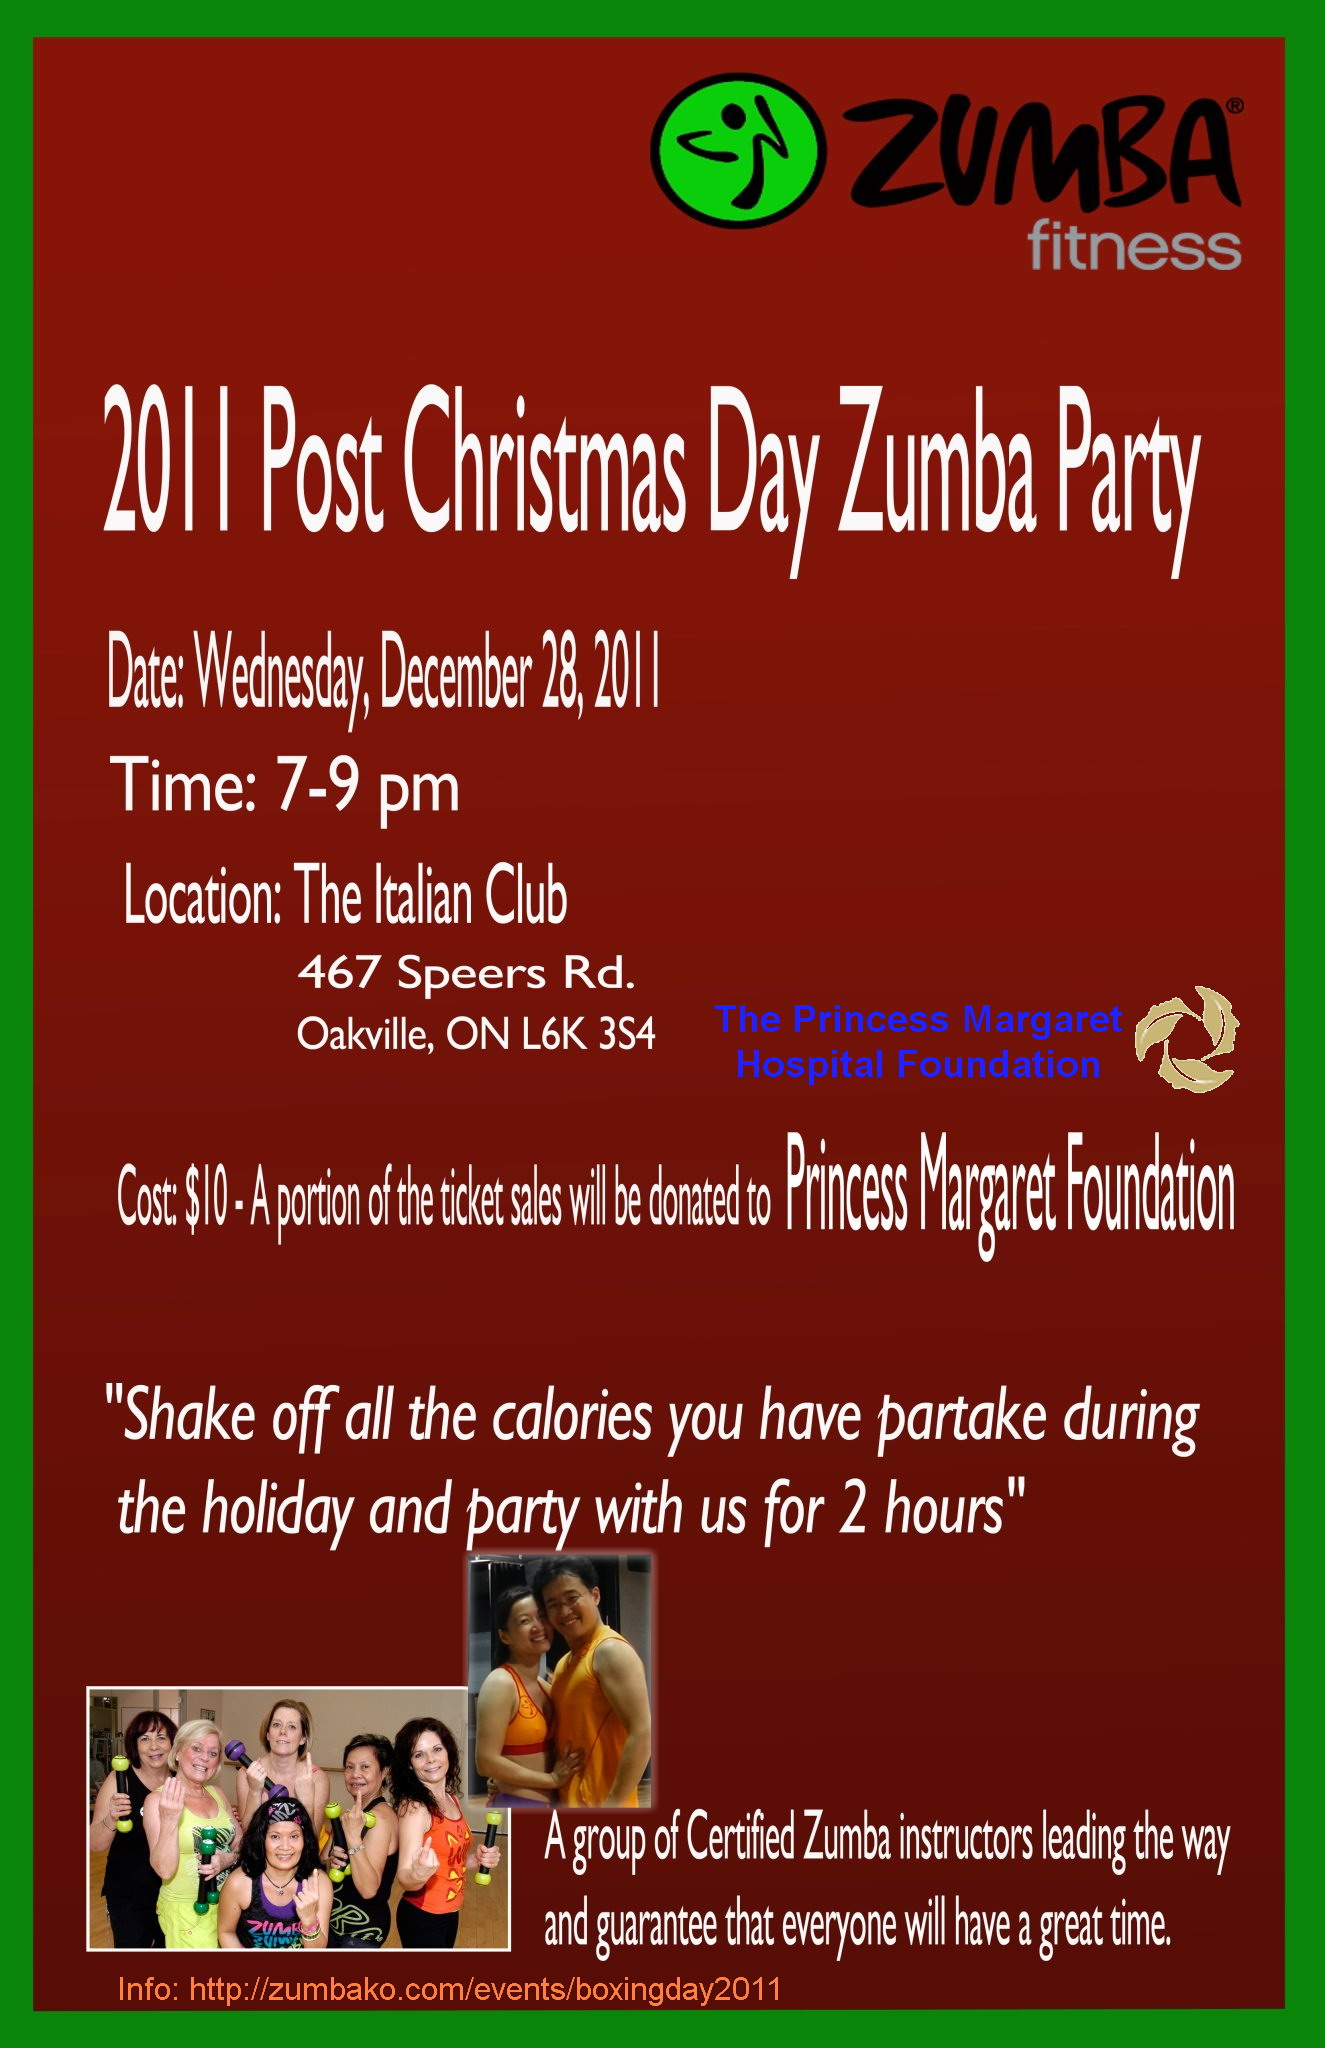 Zumba Christmas Party Images.Boxing Day 2011 Zumba Party Dec 28 2011 Zumba Fitness